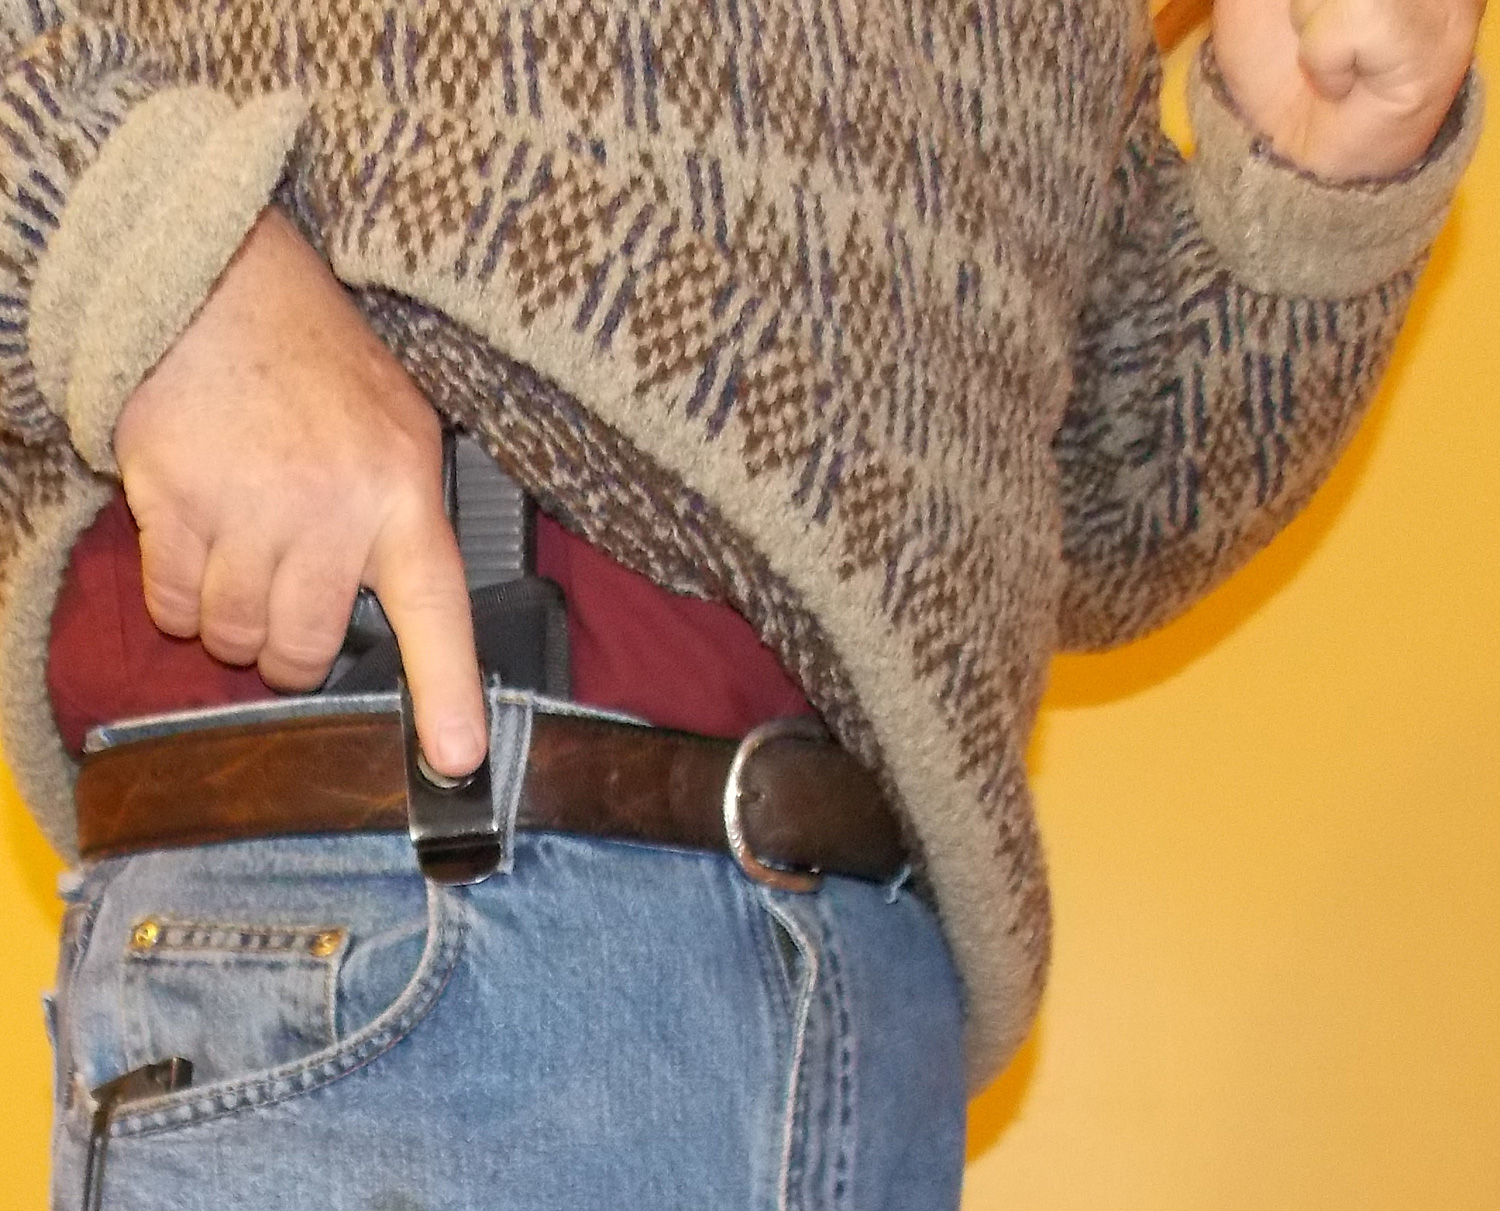 Demonstration of the draw technique using appendix carry of a firearm